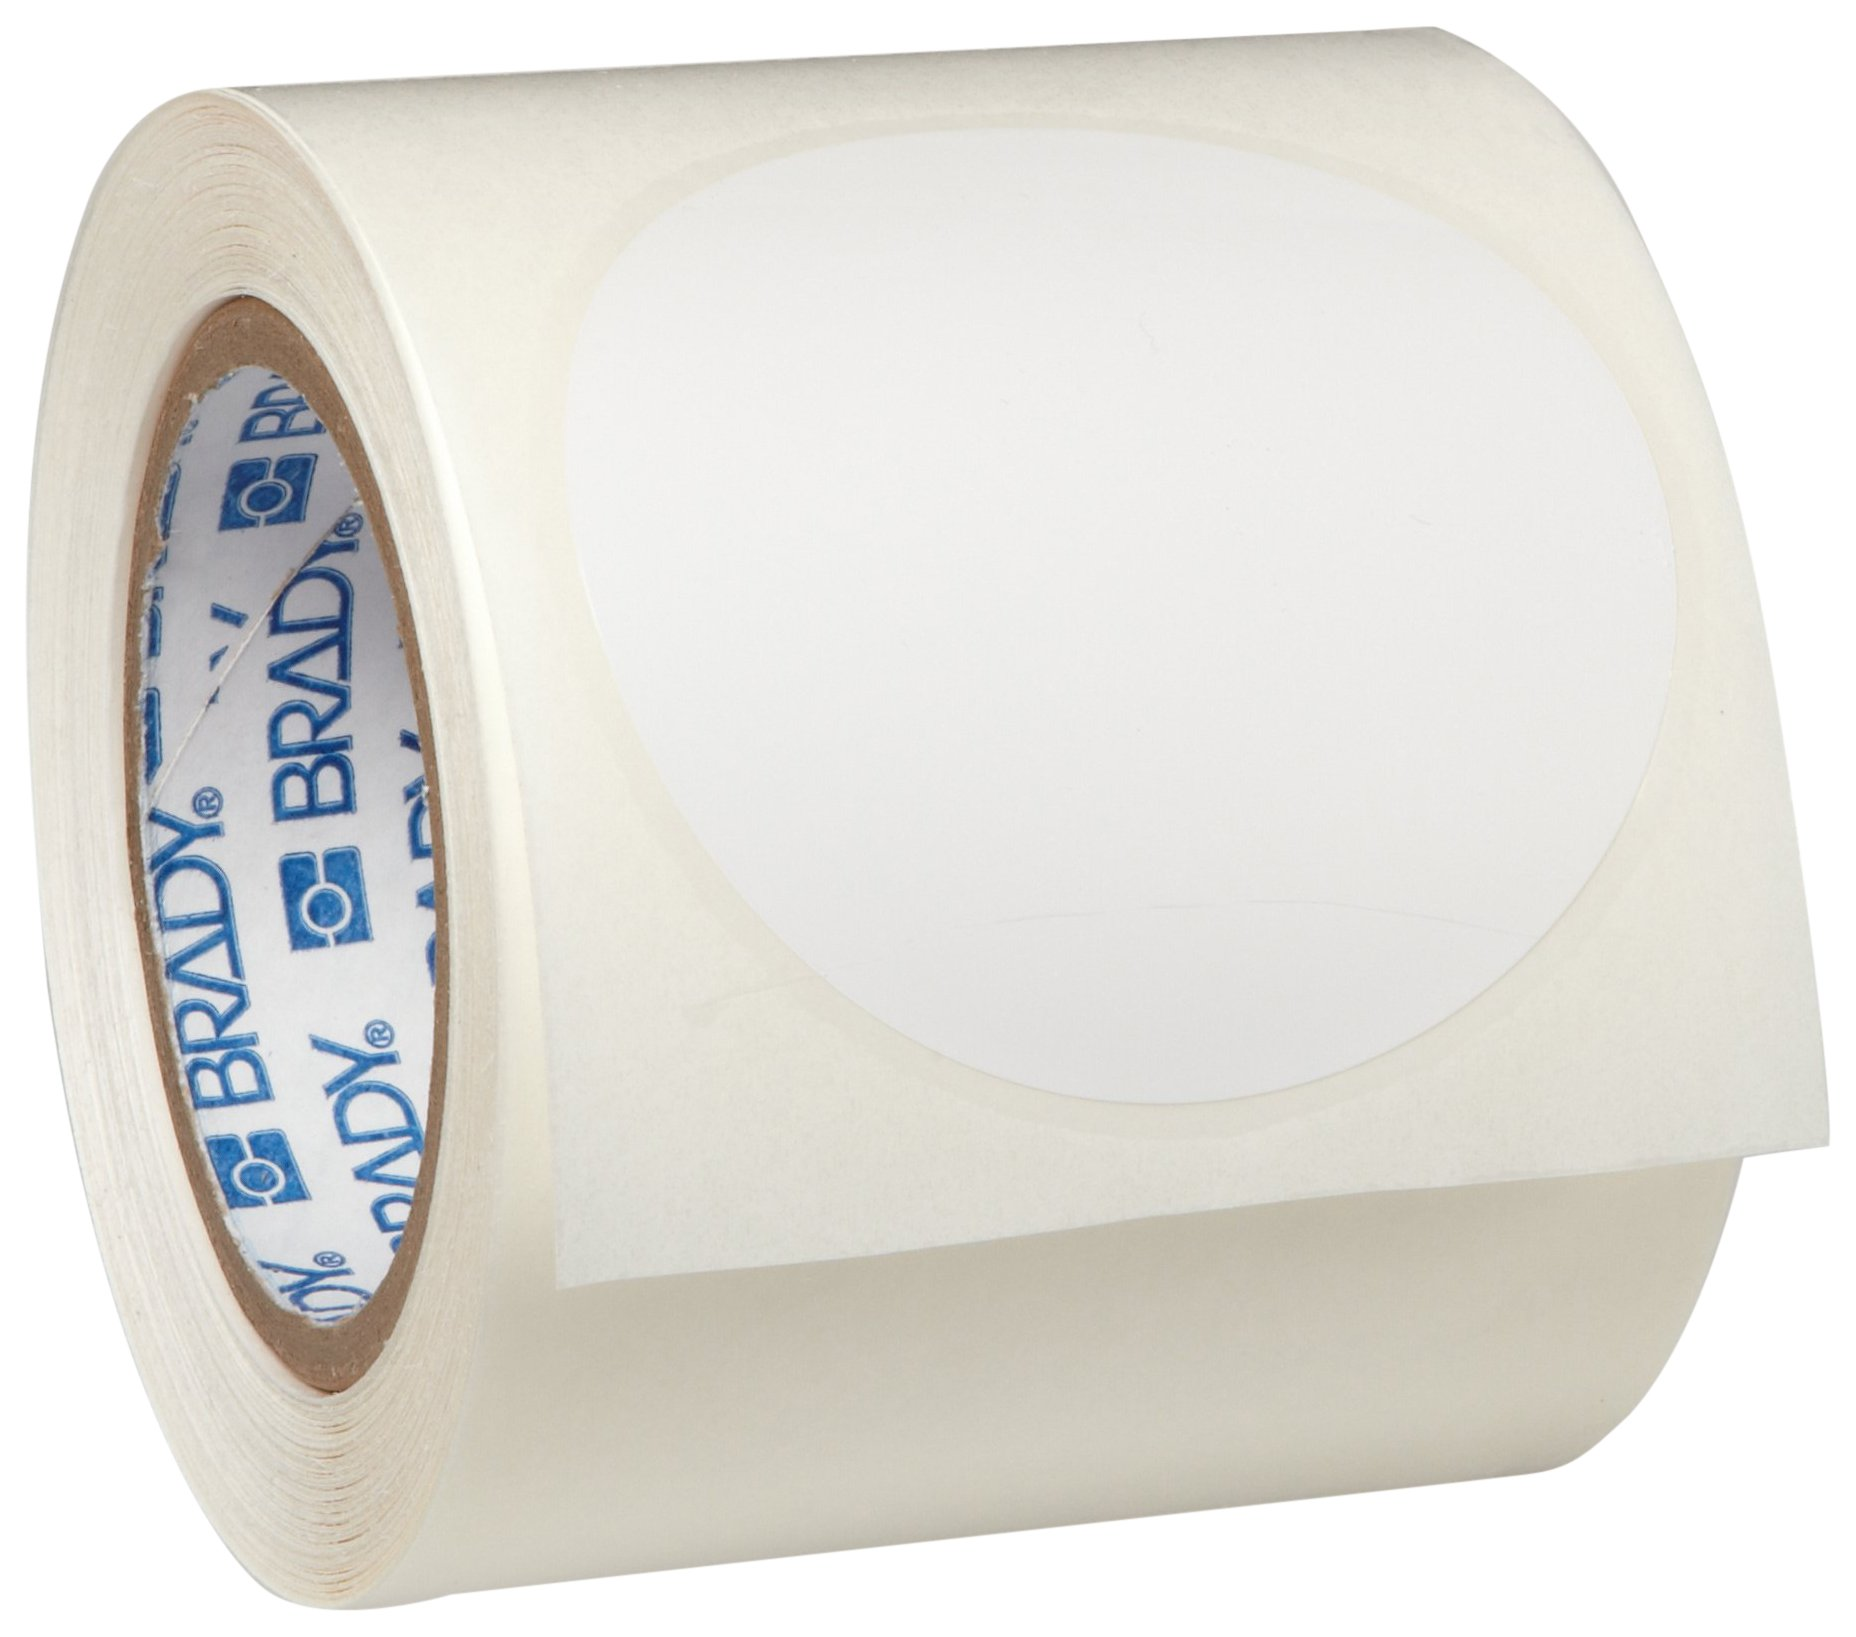 Brady ToughStripe Nonabrasive Dot Shaped Floor Marking Tape, 3.5'' Diameter, White, Prespaced (Pack of 55 Per Roll)